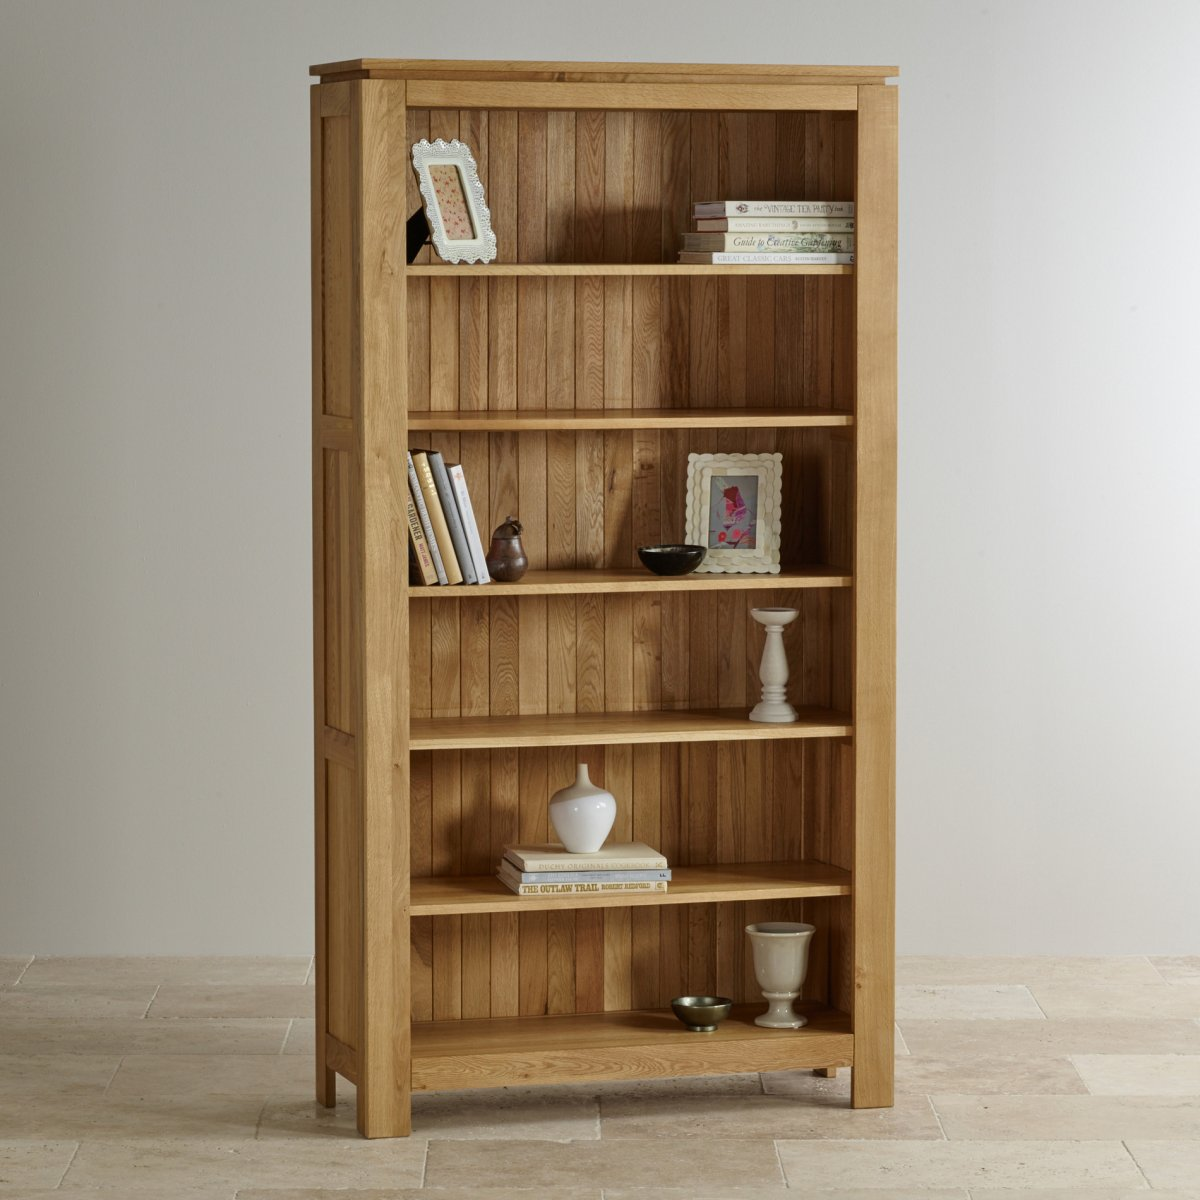 Galway natural solid oak bookcase living room furniture for Living room bookcases